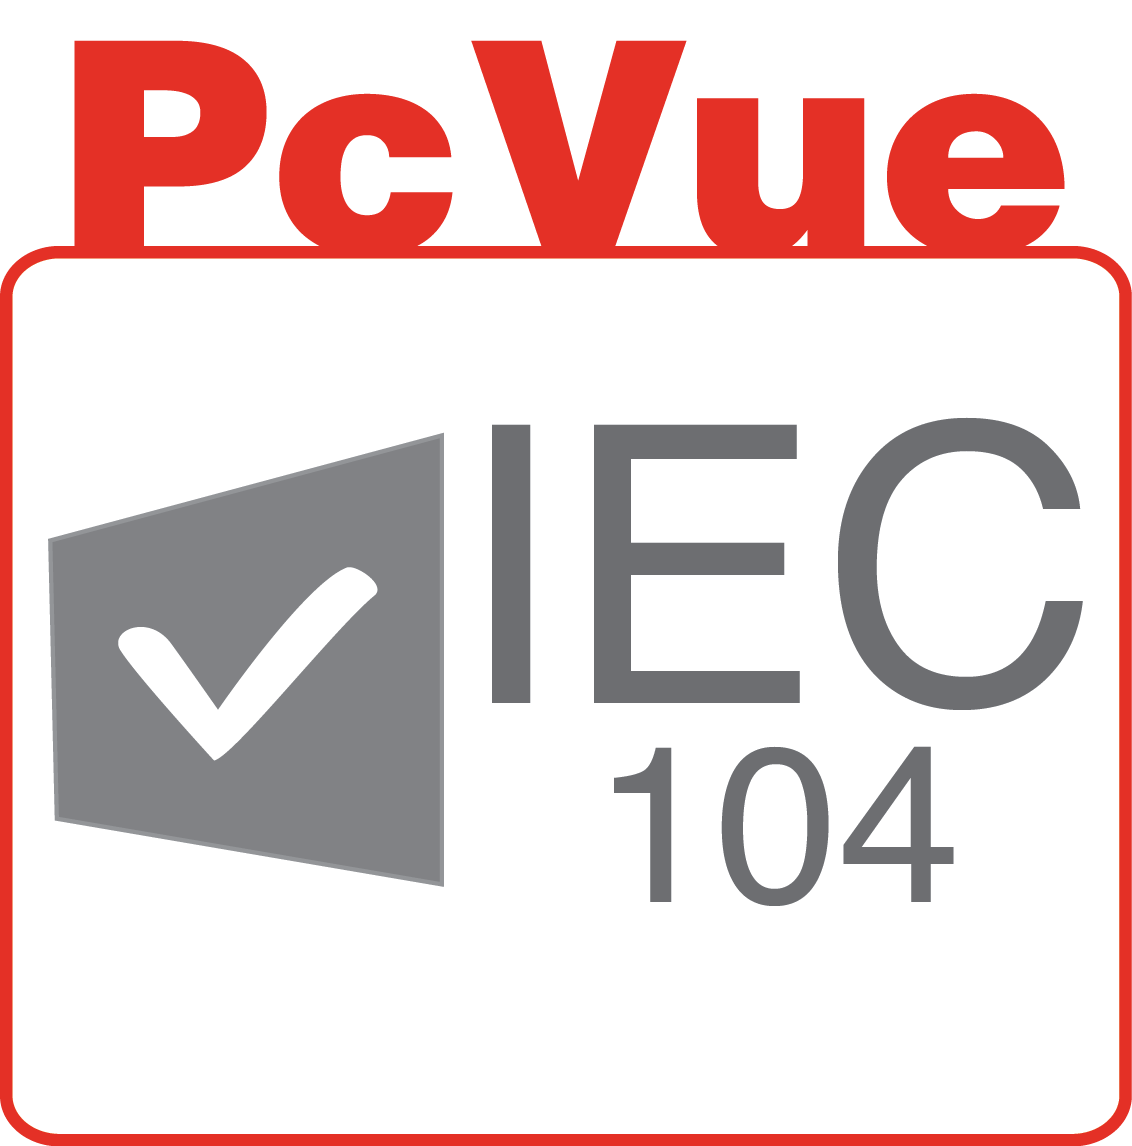 PcVue icon features IEC104